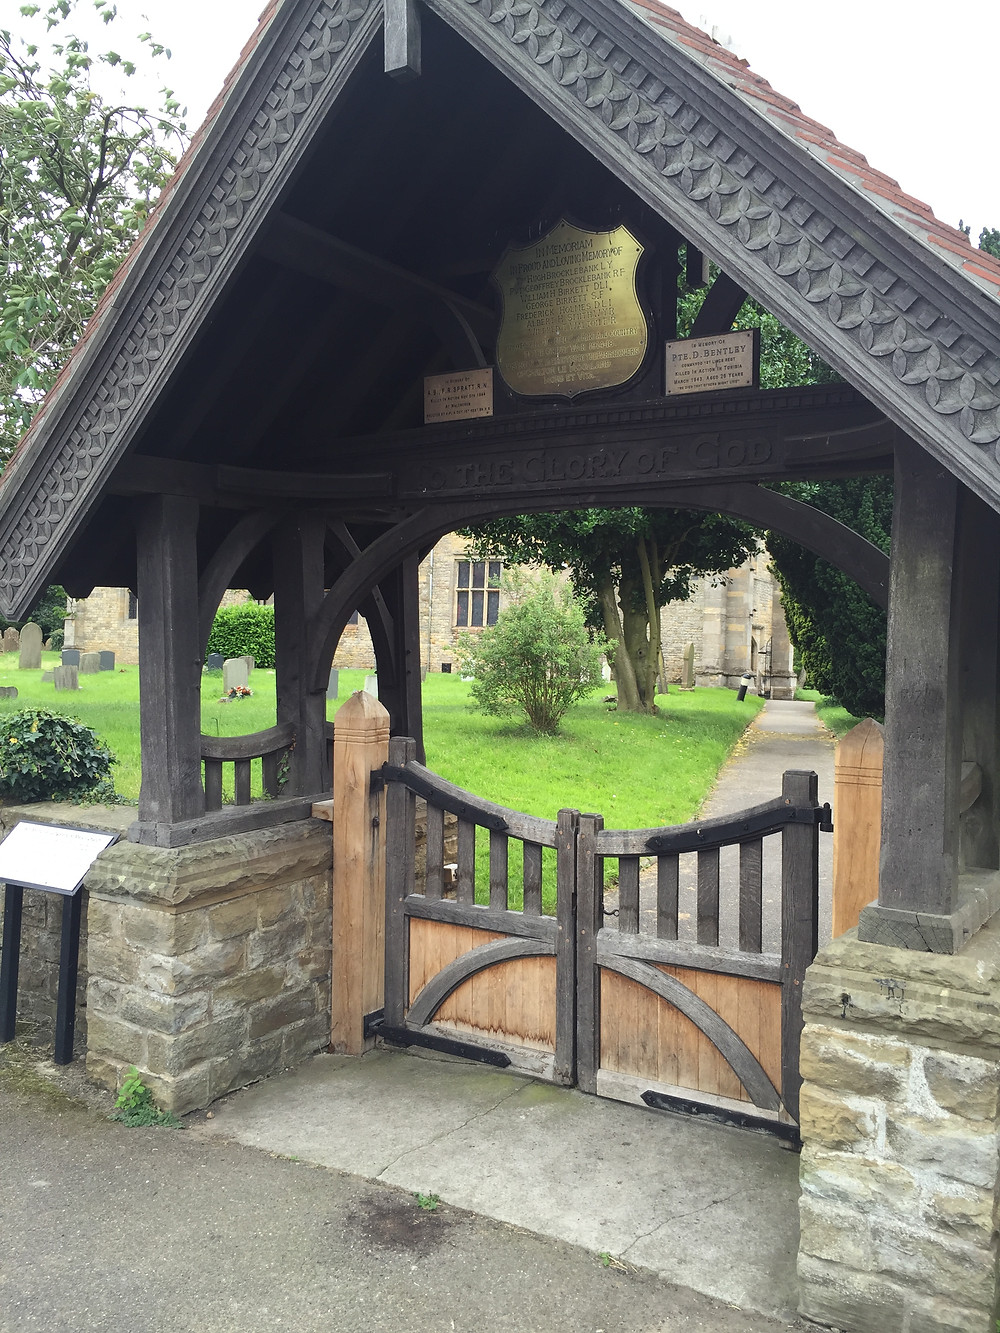 The Lychgate in front of St Mary's Church.